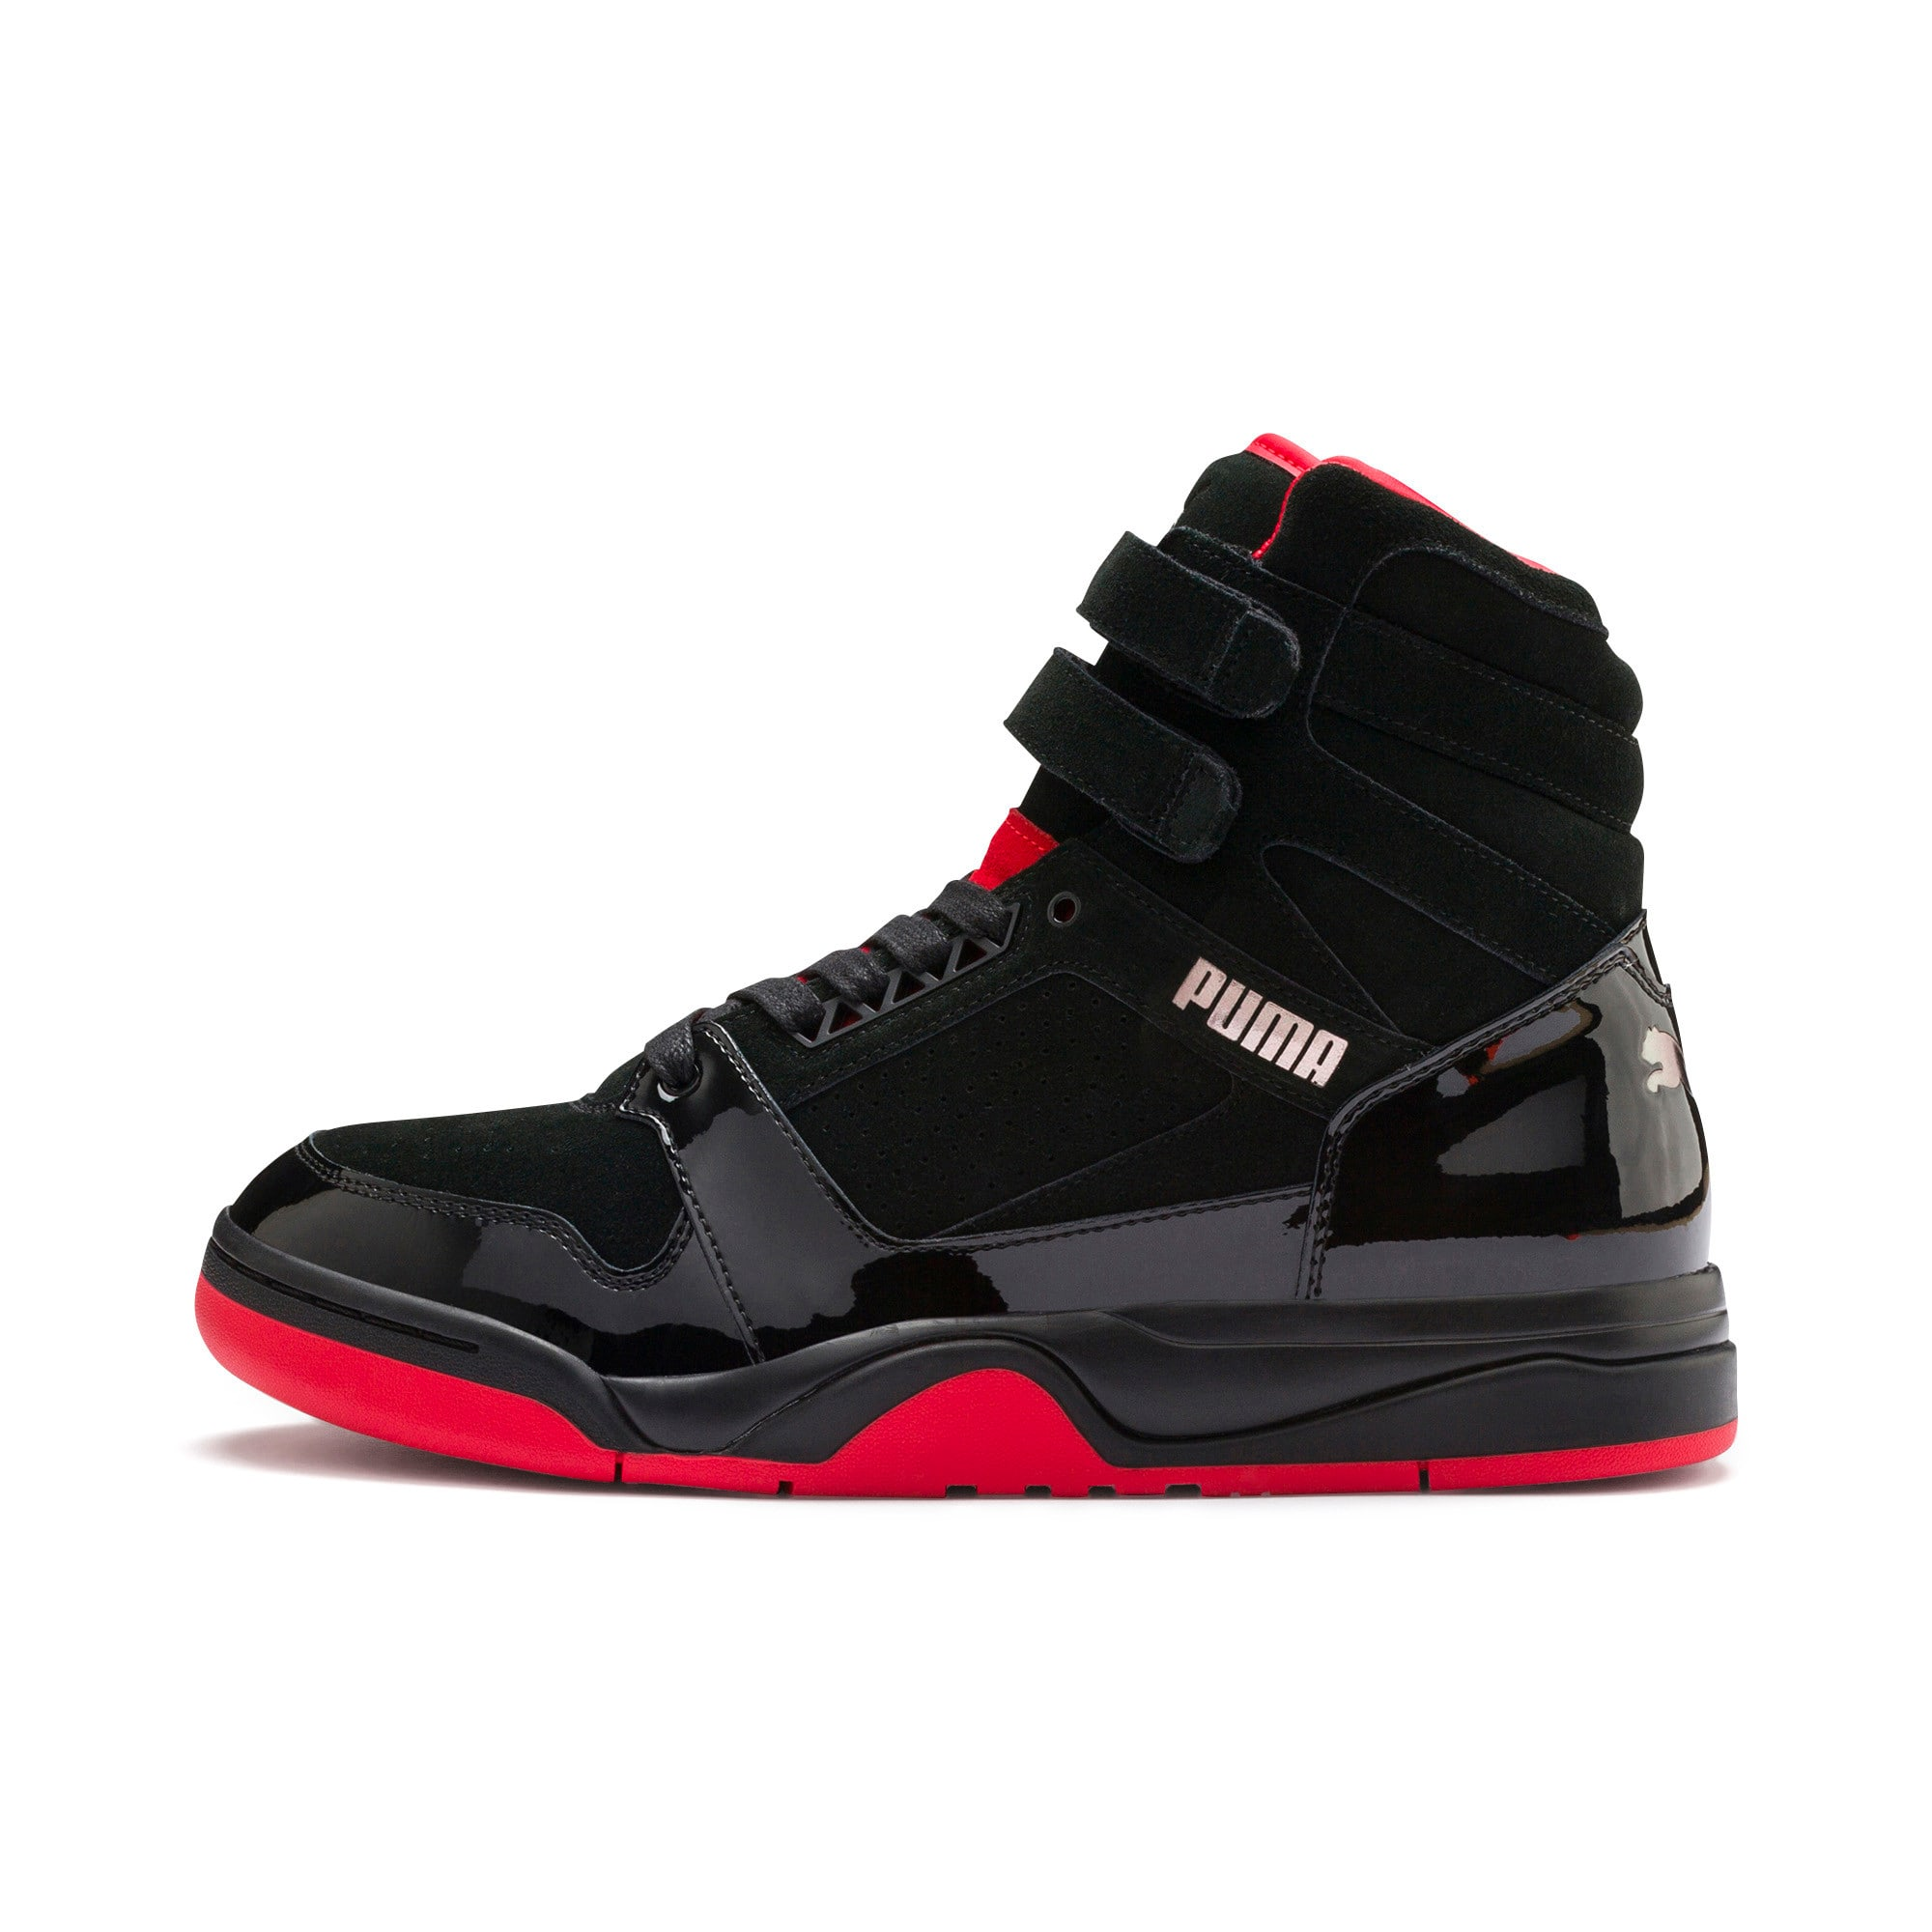 Thumbnail 1 of Palace Guard Mid Red Carpet Sneakers, Puma Black-Risk Red-Bronze, medium